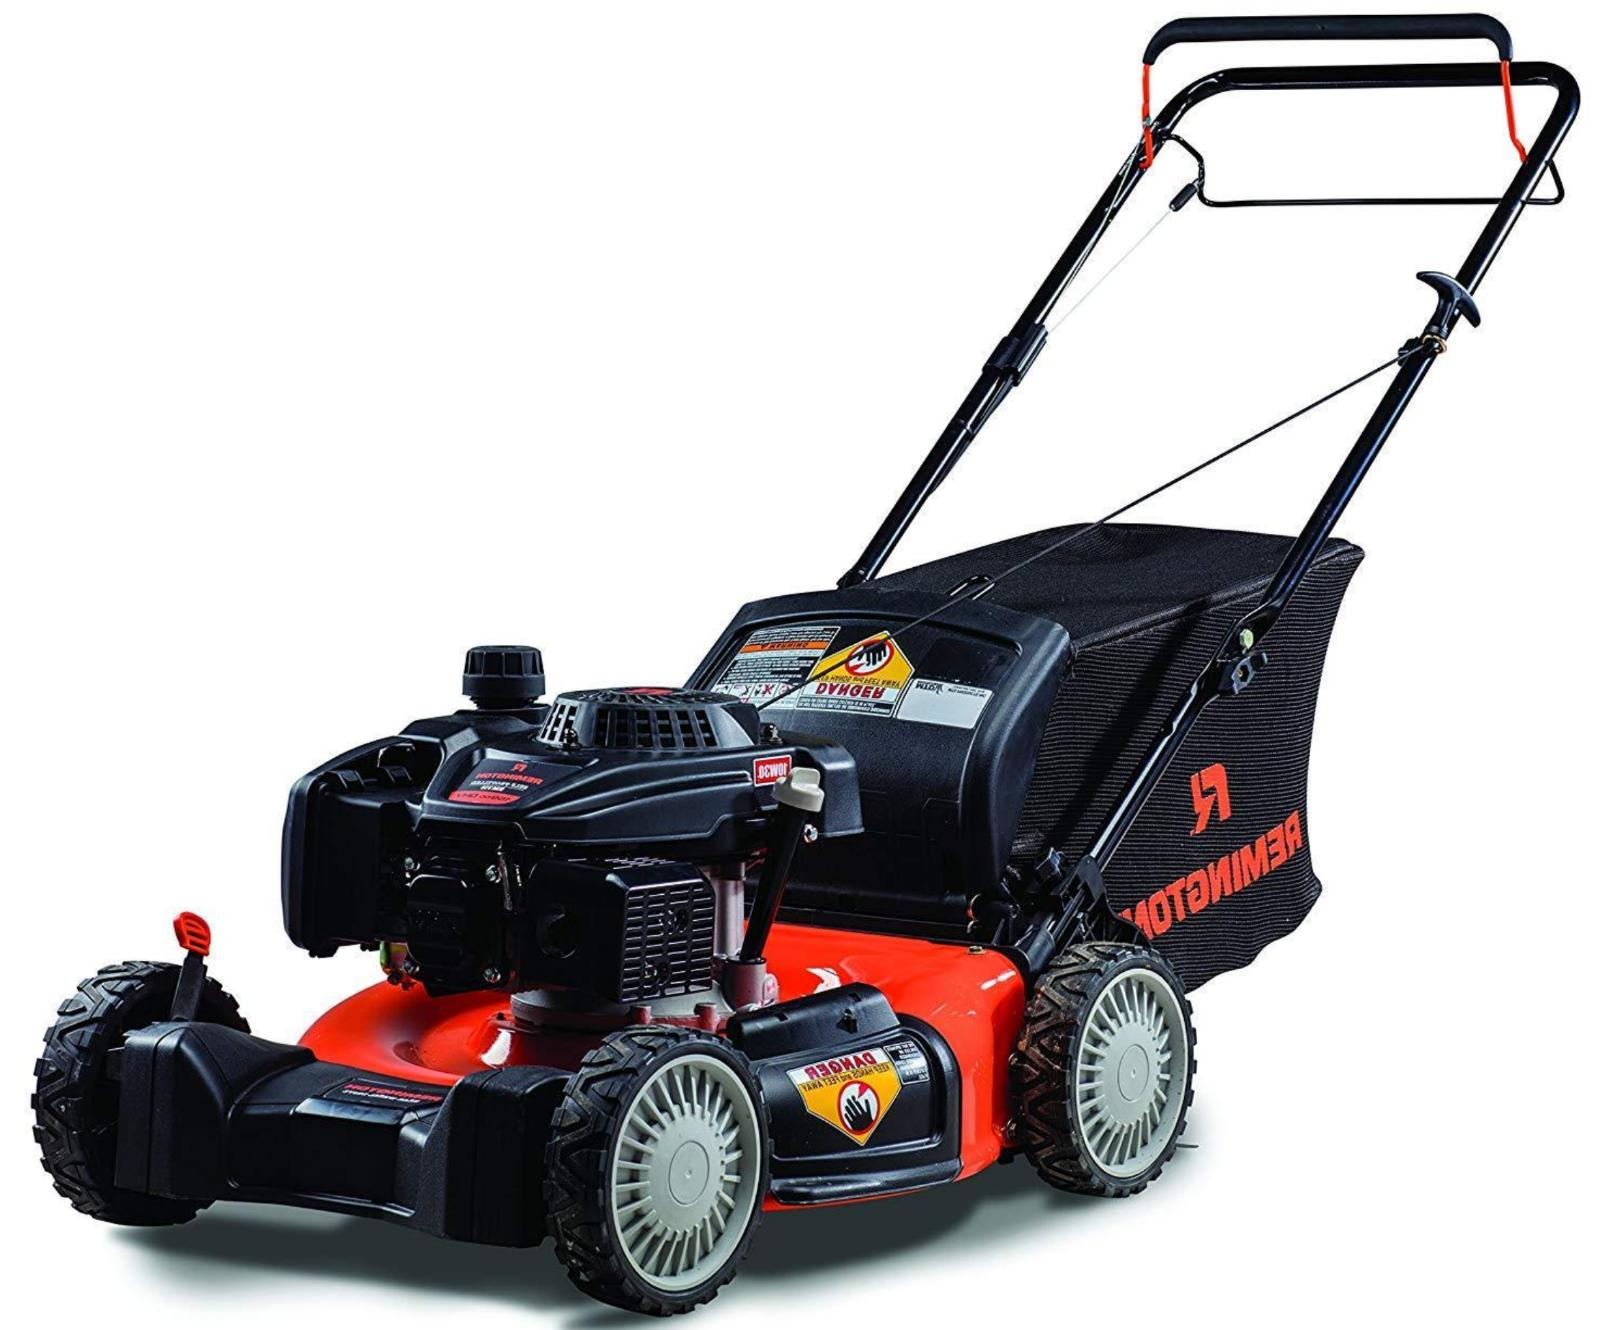 Remington cc 21-Inch Rwd Self-Propelled 3-in-1 Lawn